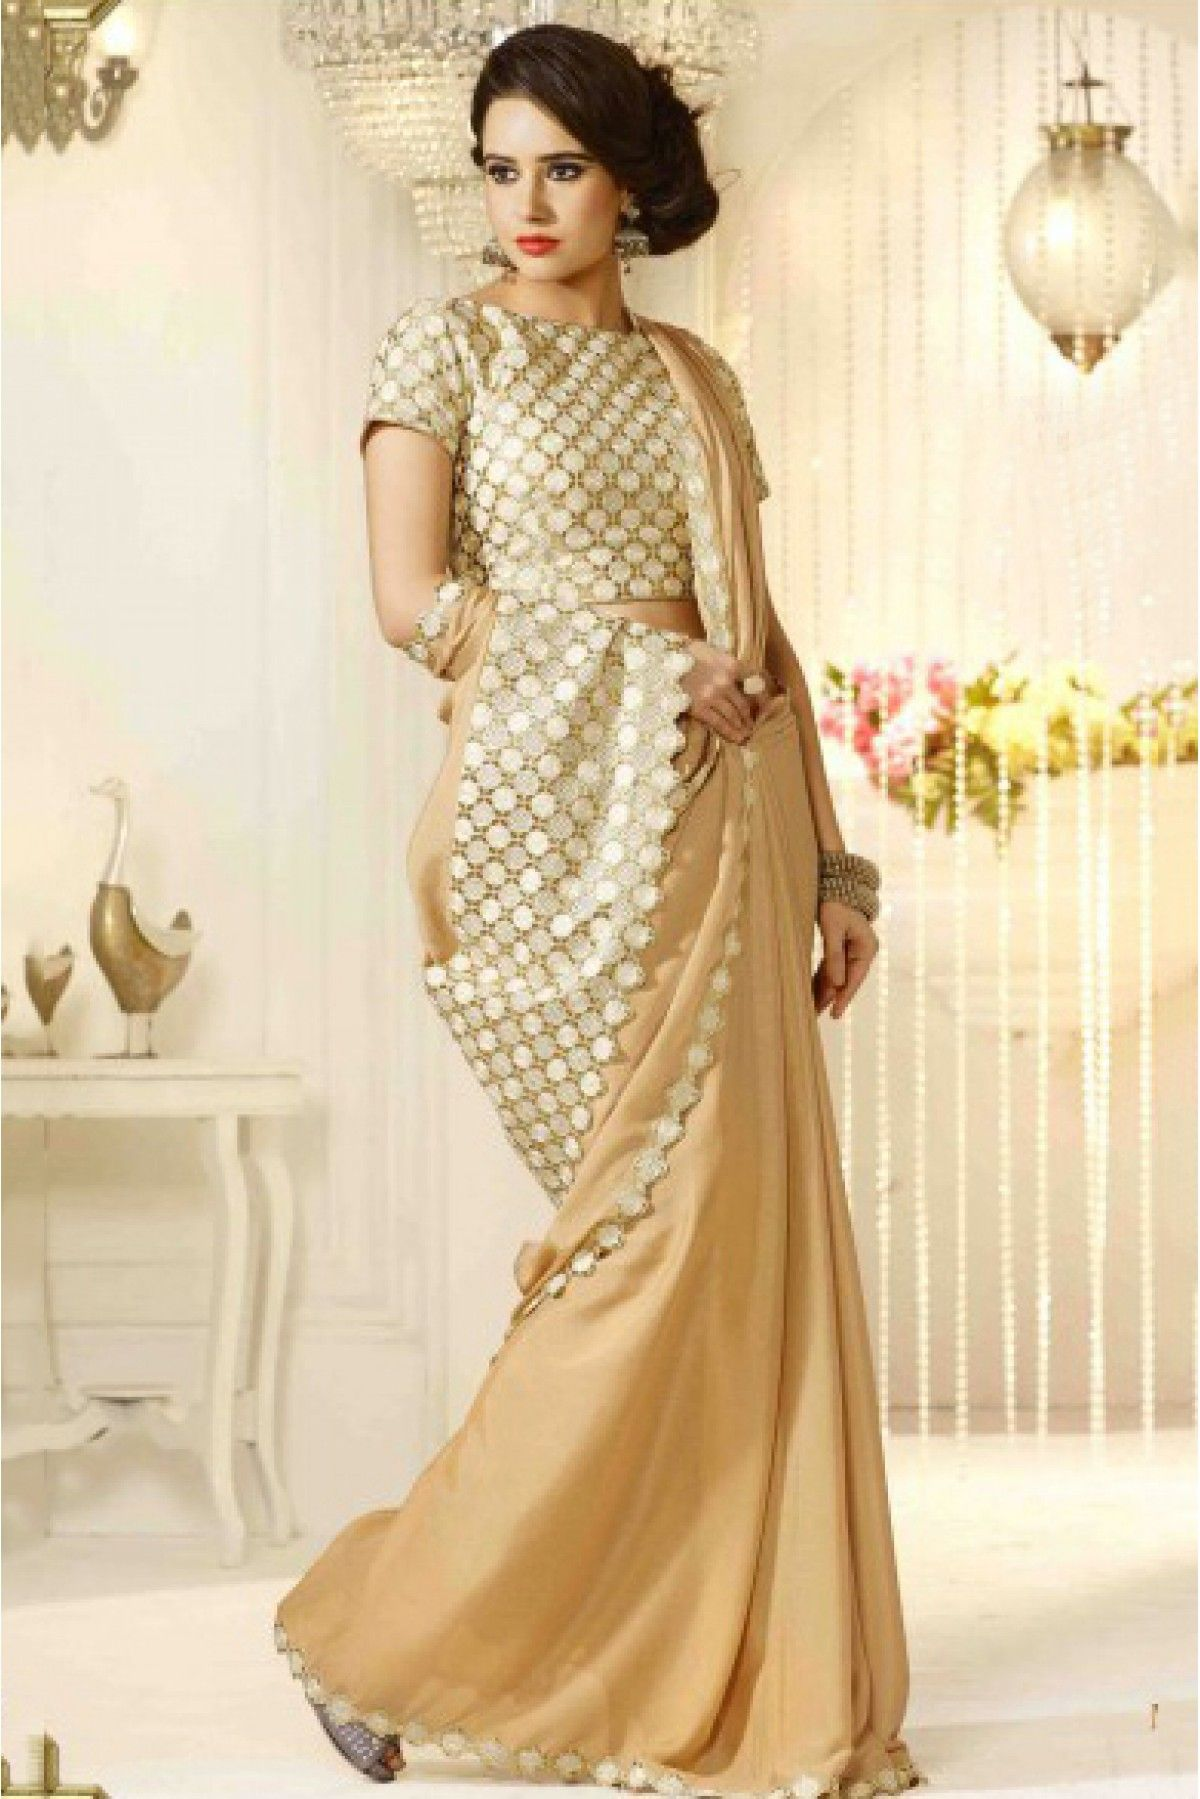 62a499d1e3 Georgette Party Wear Saree in Cream Colour.It comes with matching Blouse.It  is